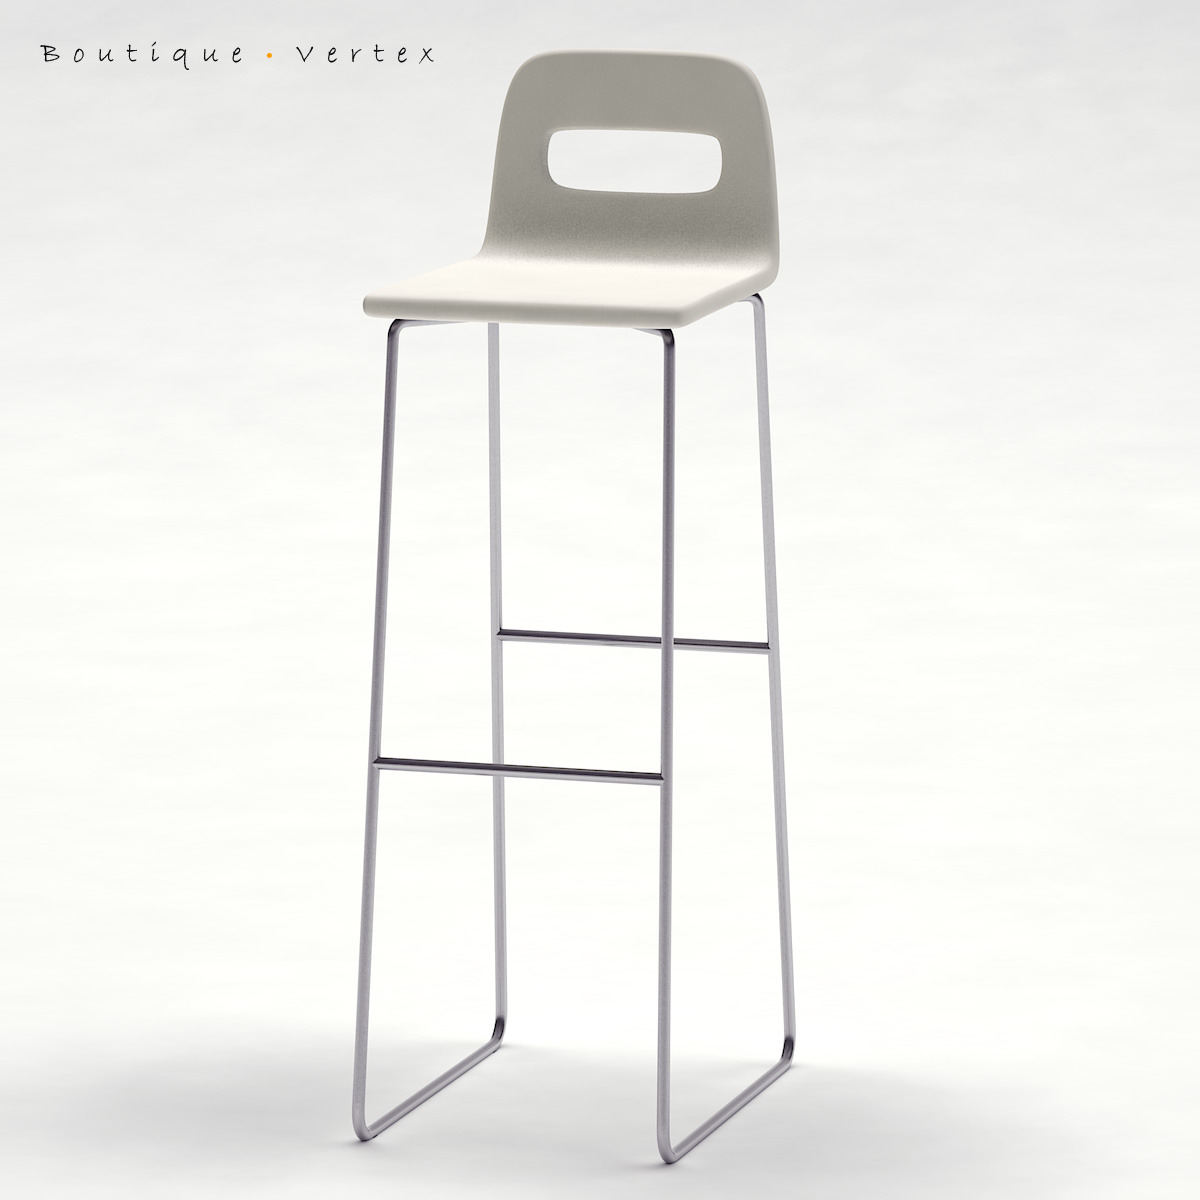 Kitchen Stool 01 - 3DOcean Item for Sale